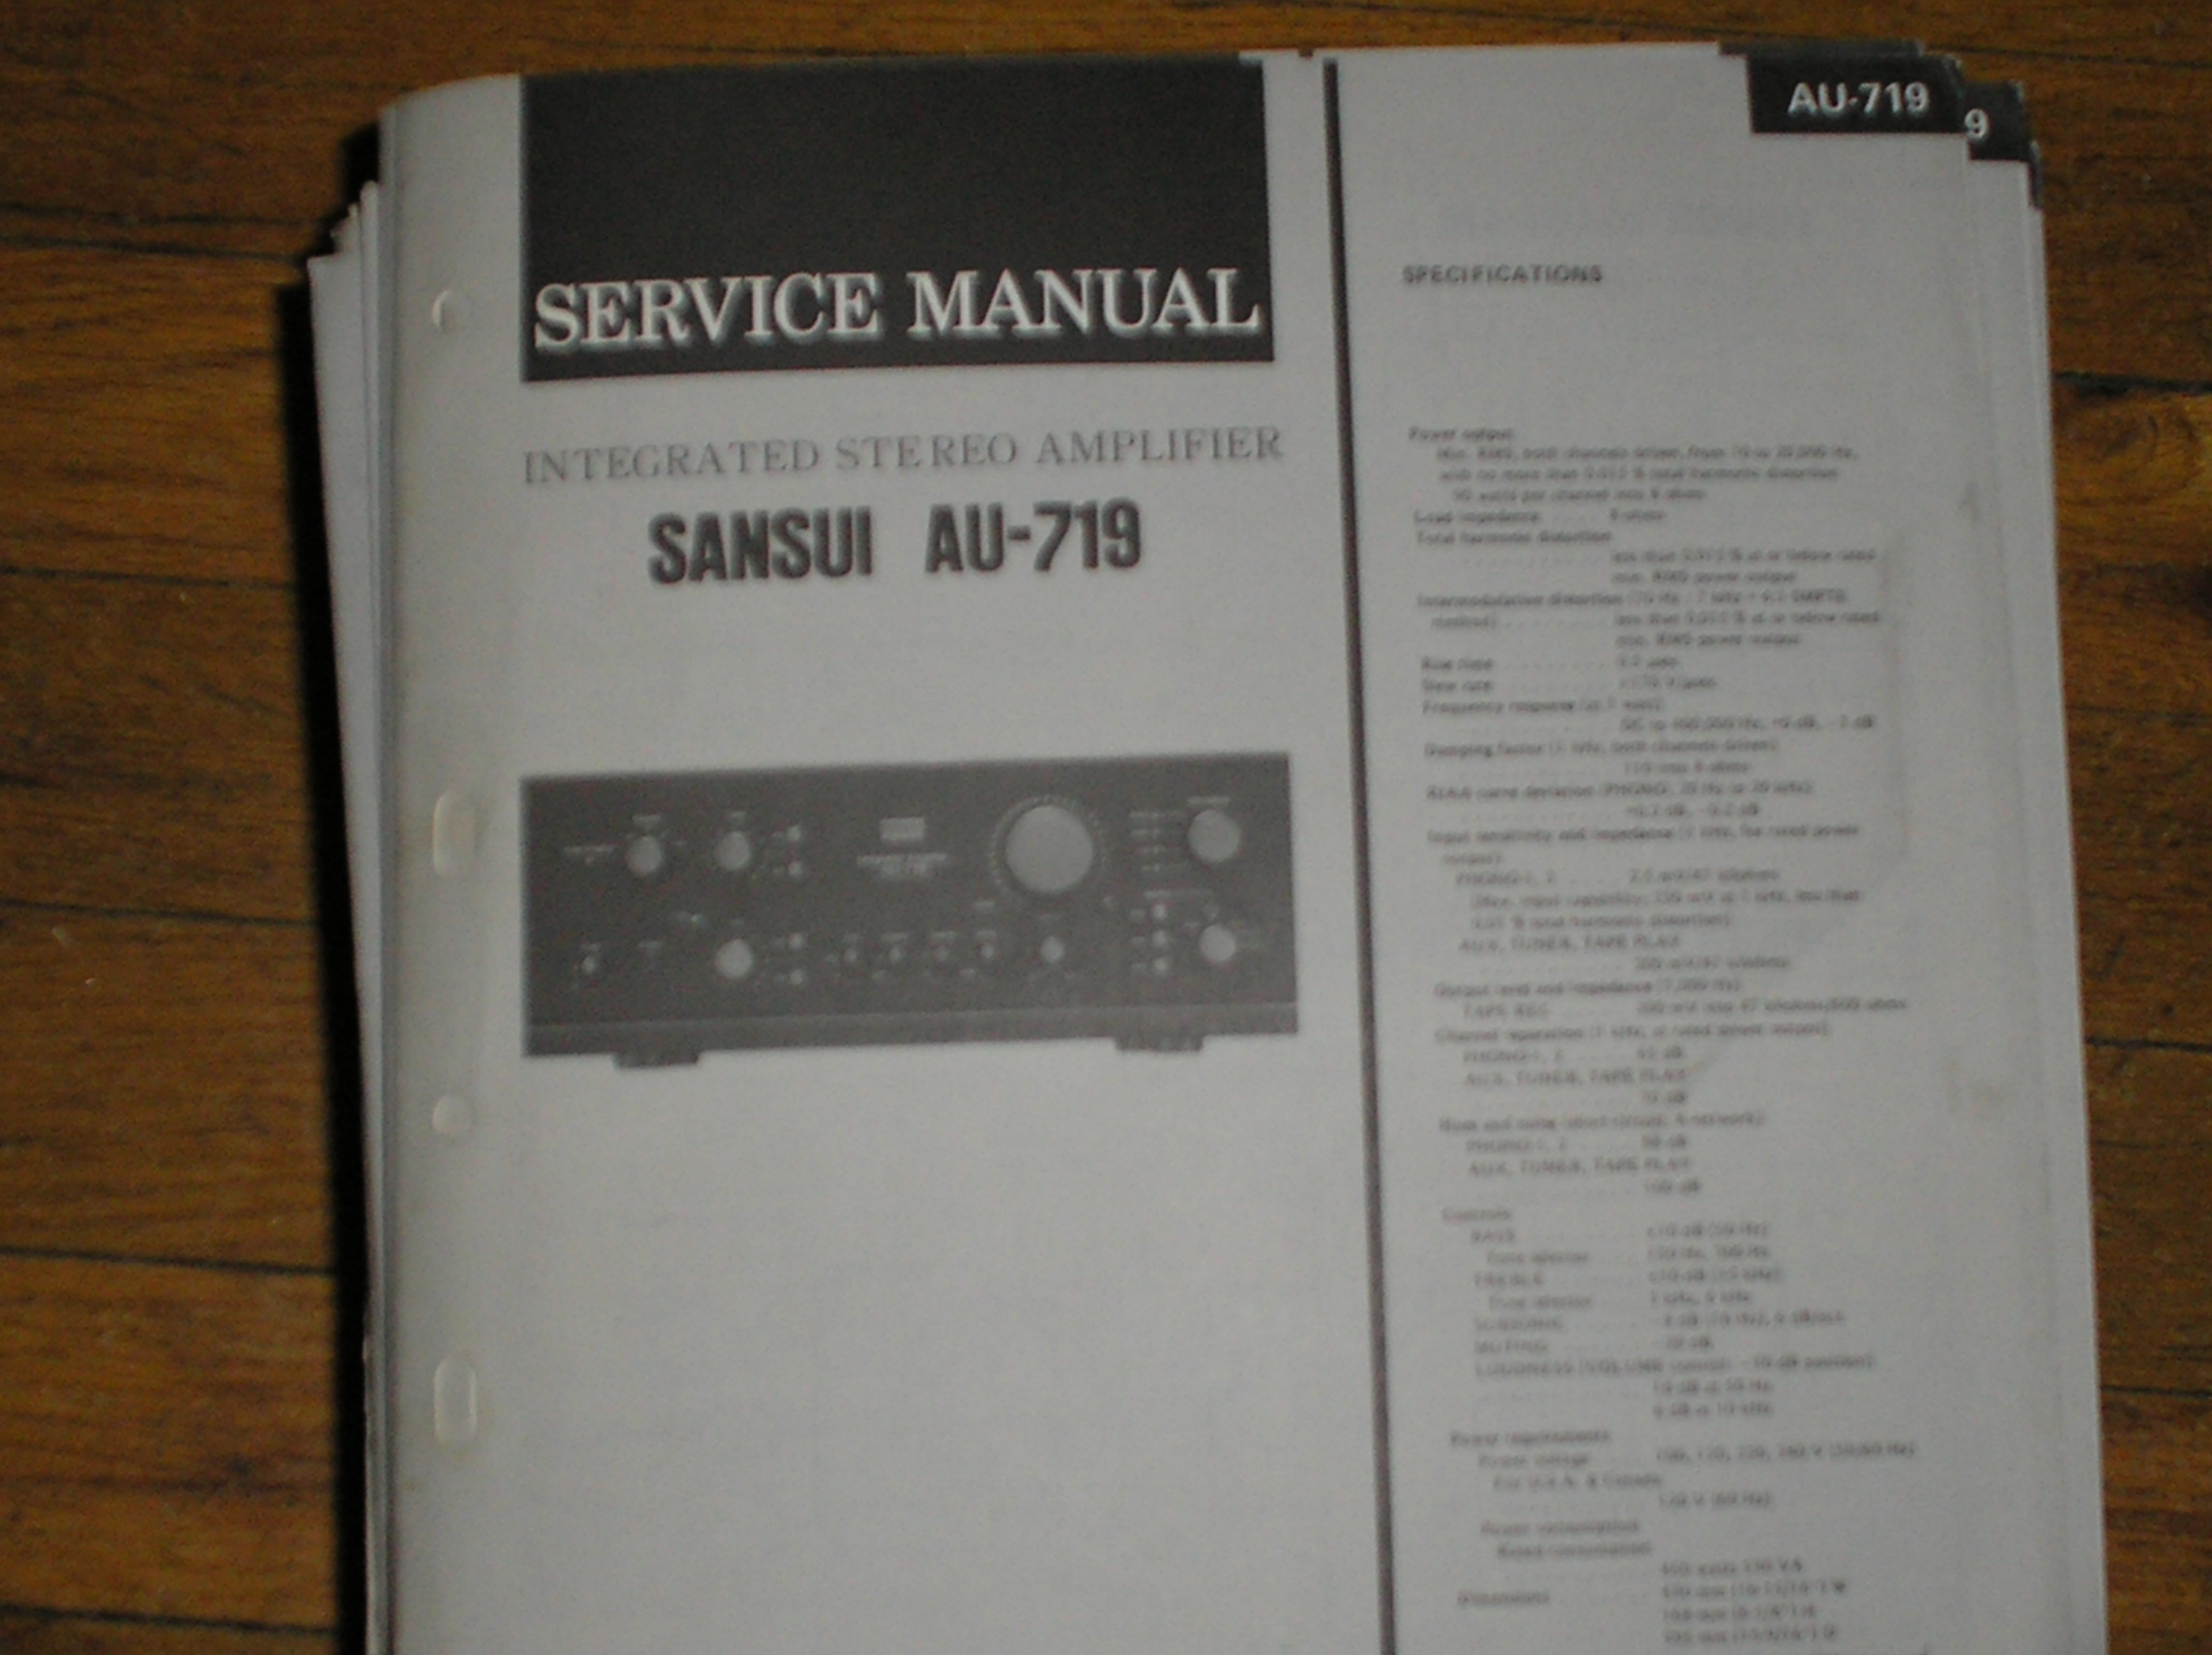 AU-719 Amplifier Service Manual